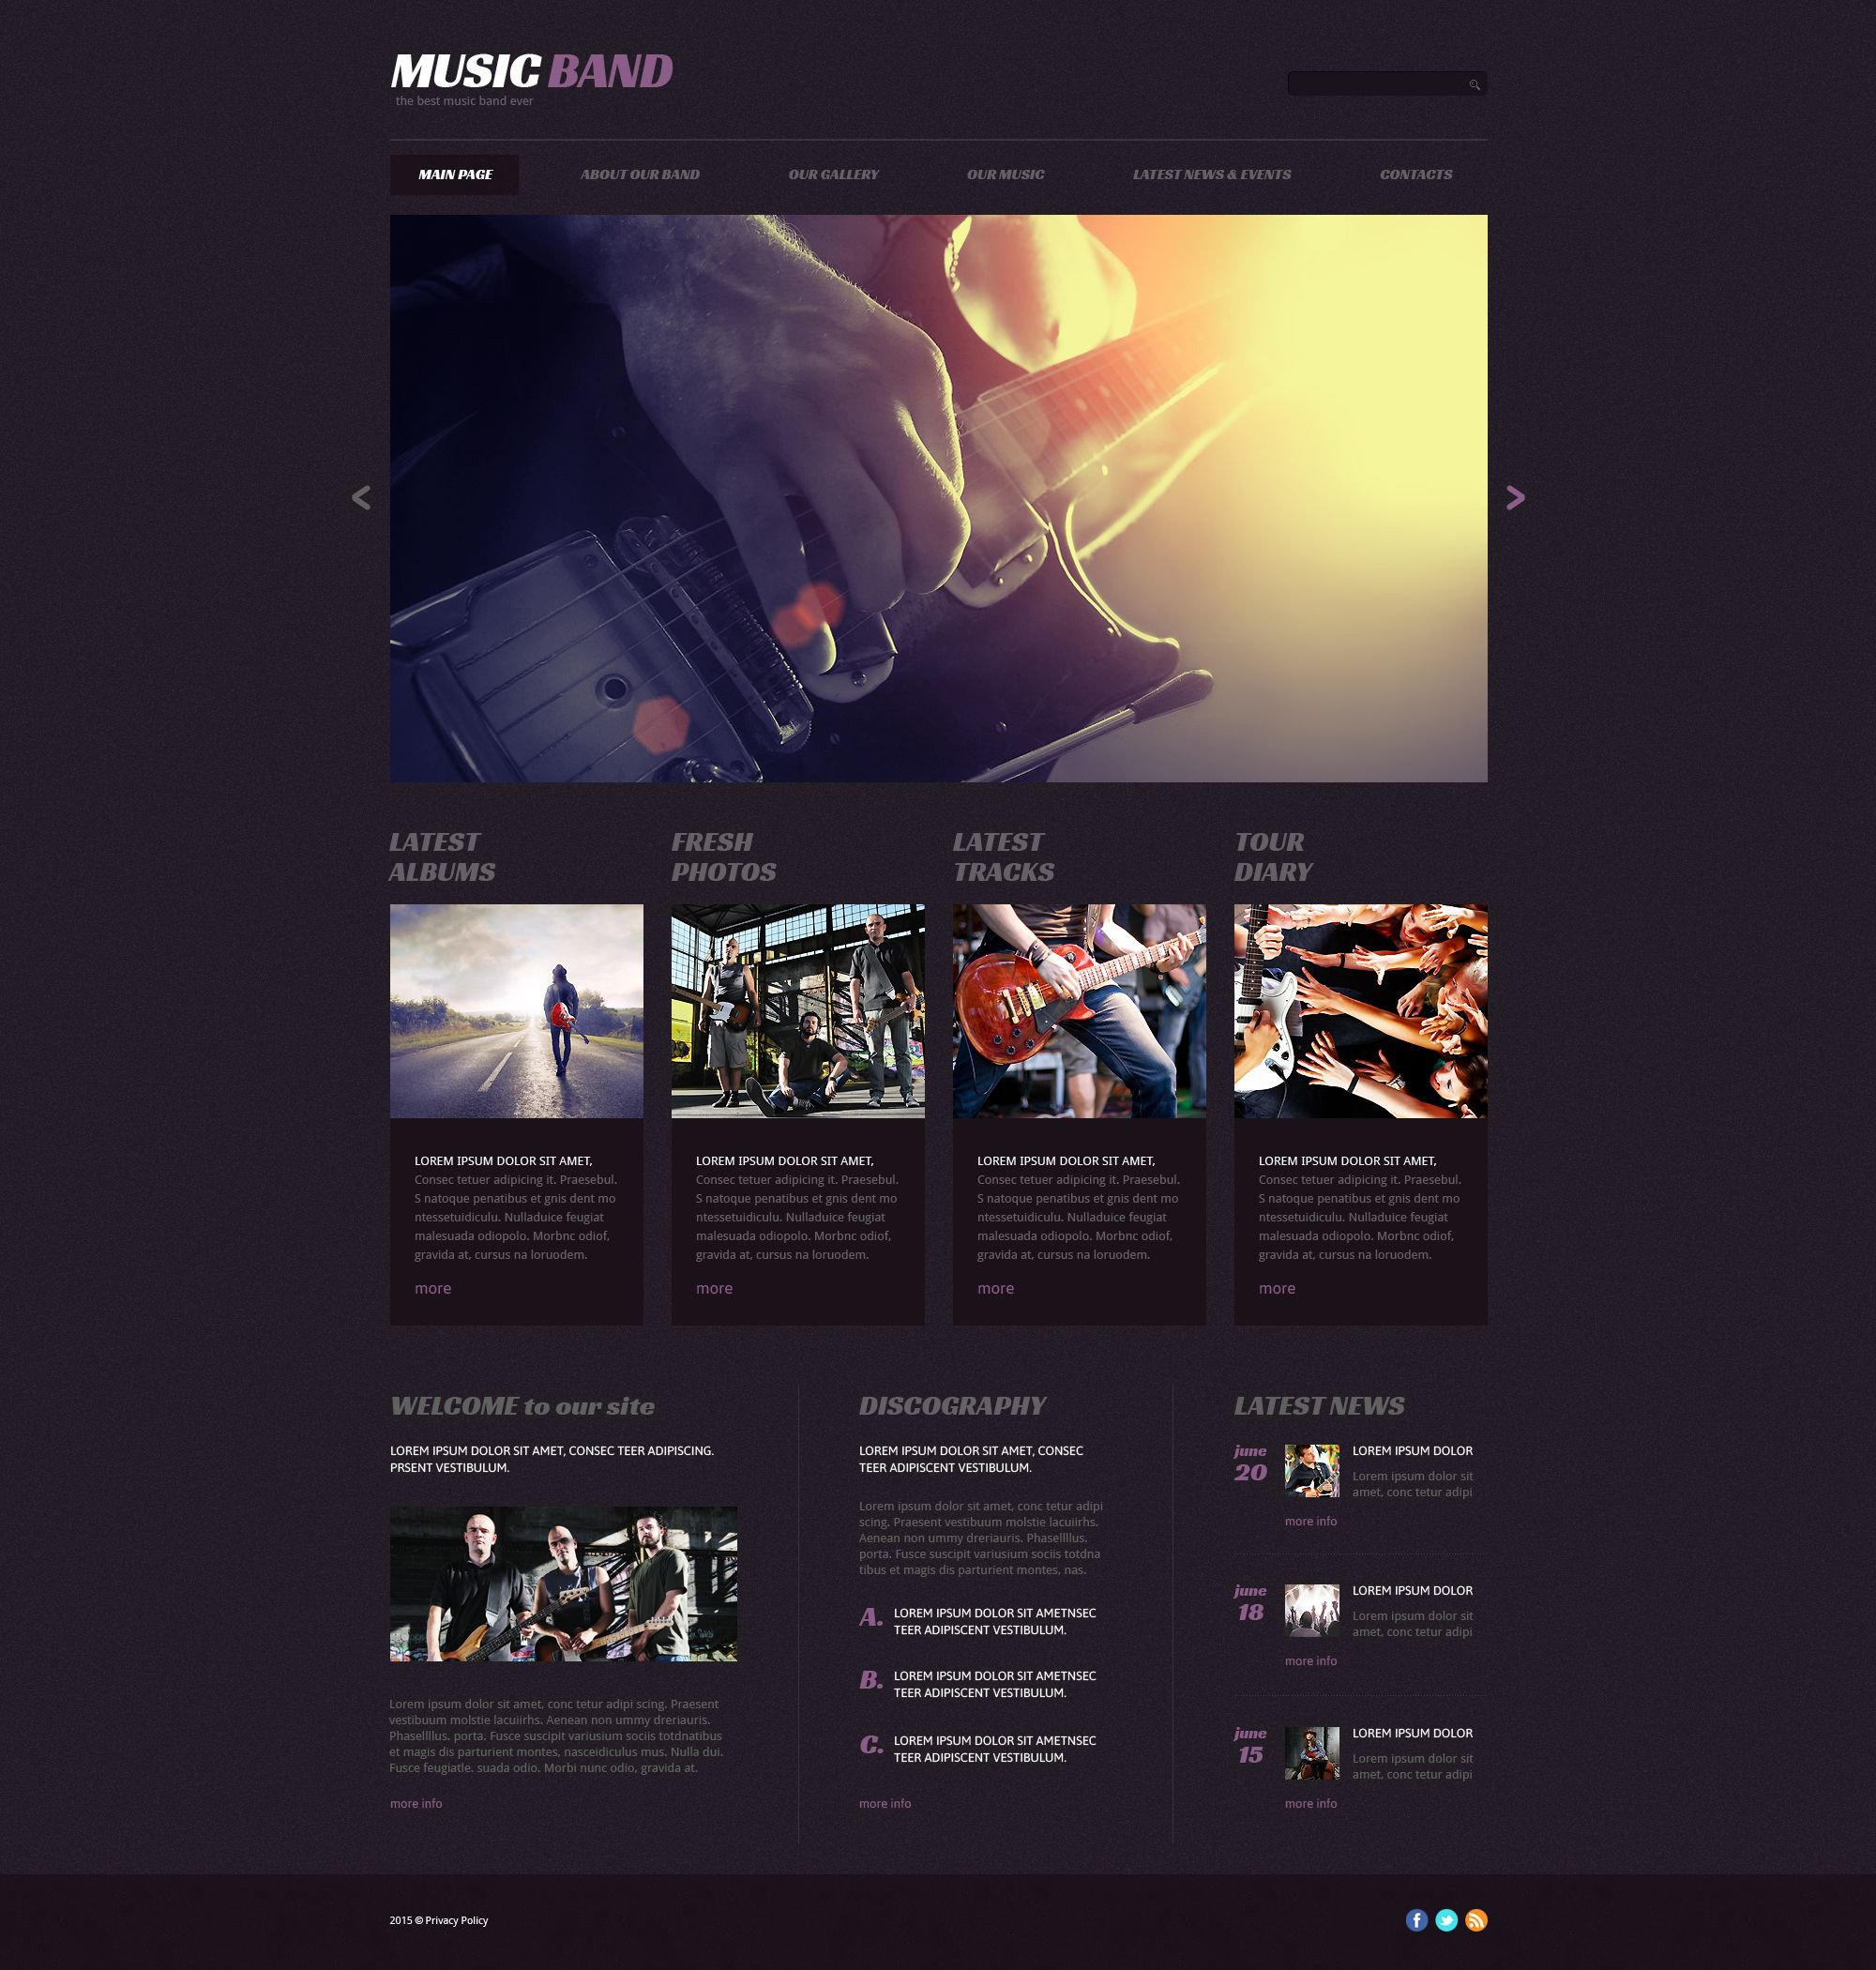 Music Band Templates | TemplateMonster